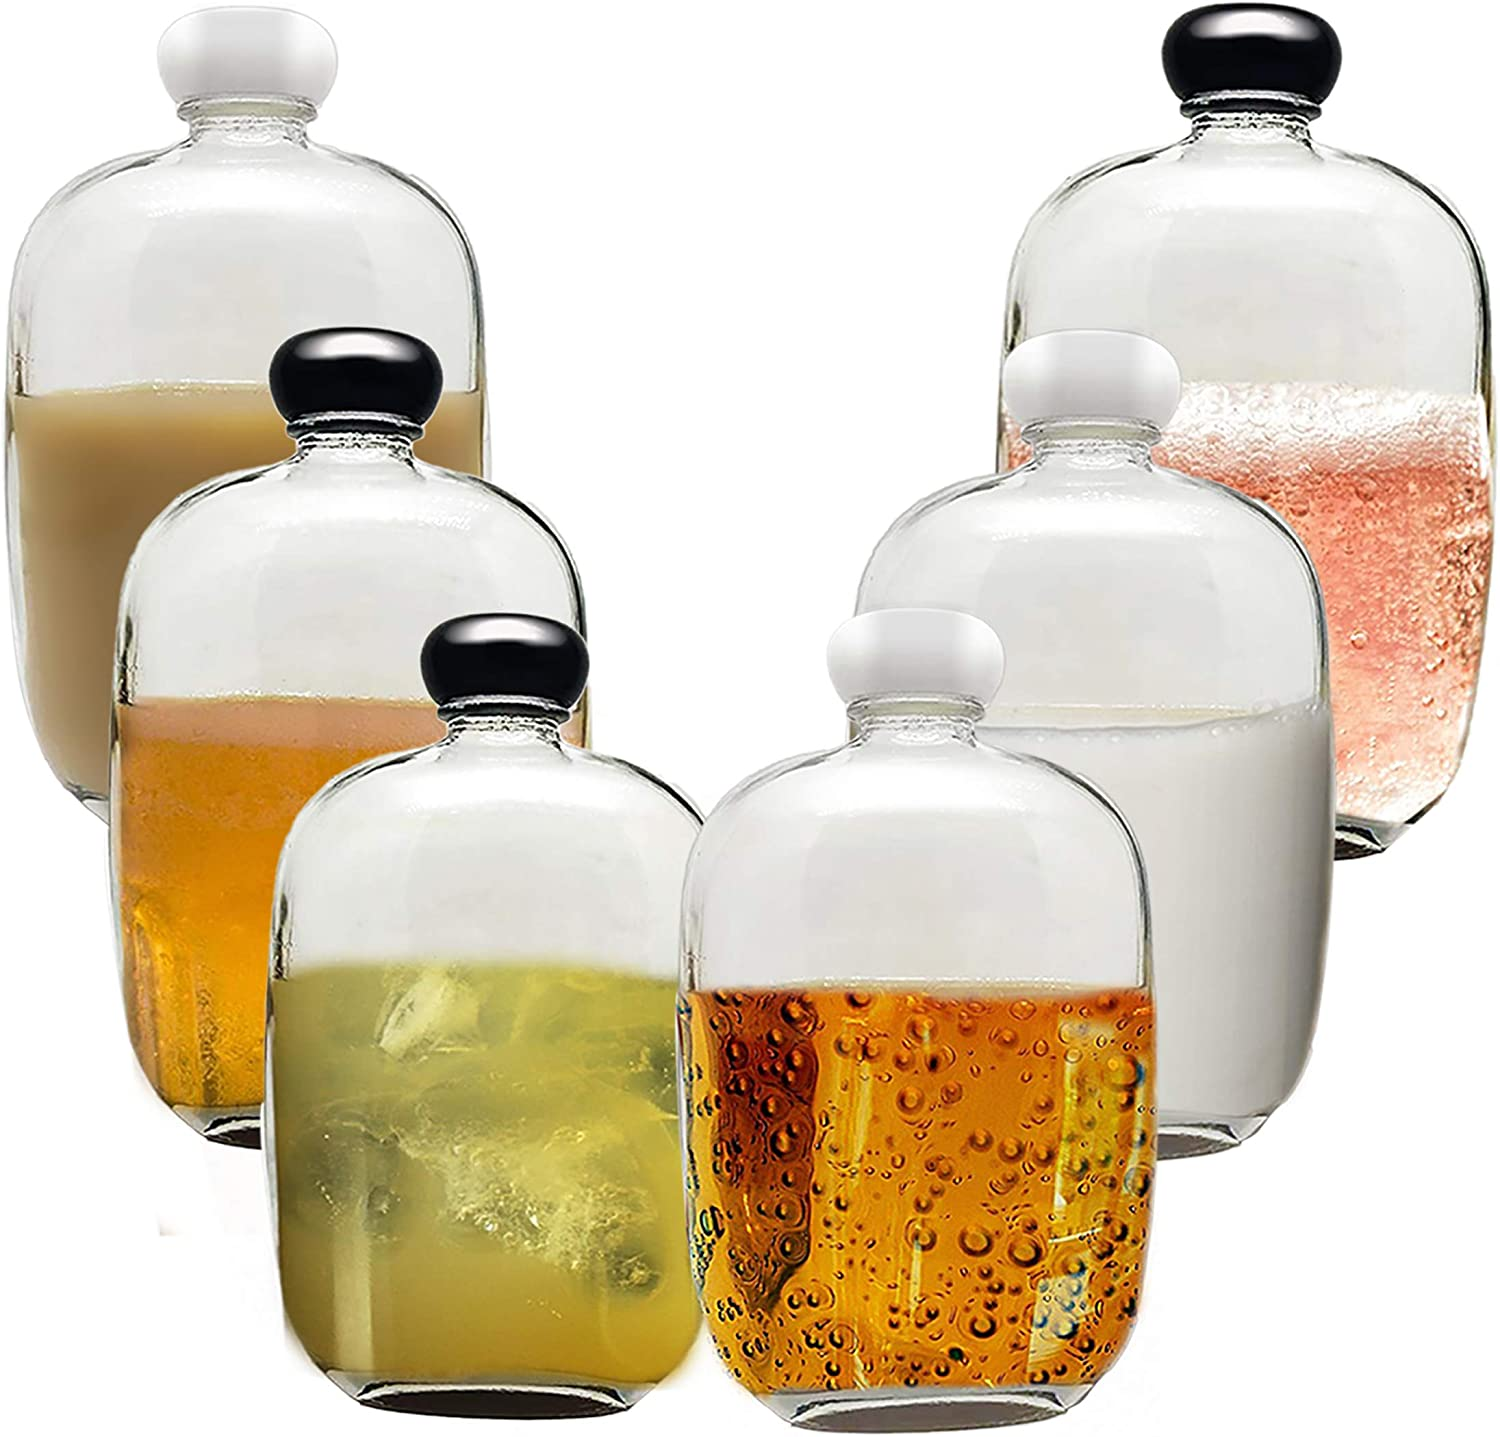 6 Packs Small Juice Mini Glass Flask Liquor Wine Bottles for Beer Milk Beverage Perfume Oil Sauce Whiskey Soda Liquid Storage Honey Drink Containers with Leak Proof Cap (100ML/3.38OZ, Clear Glass)